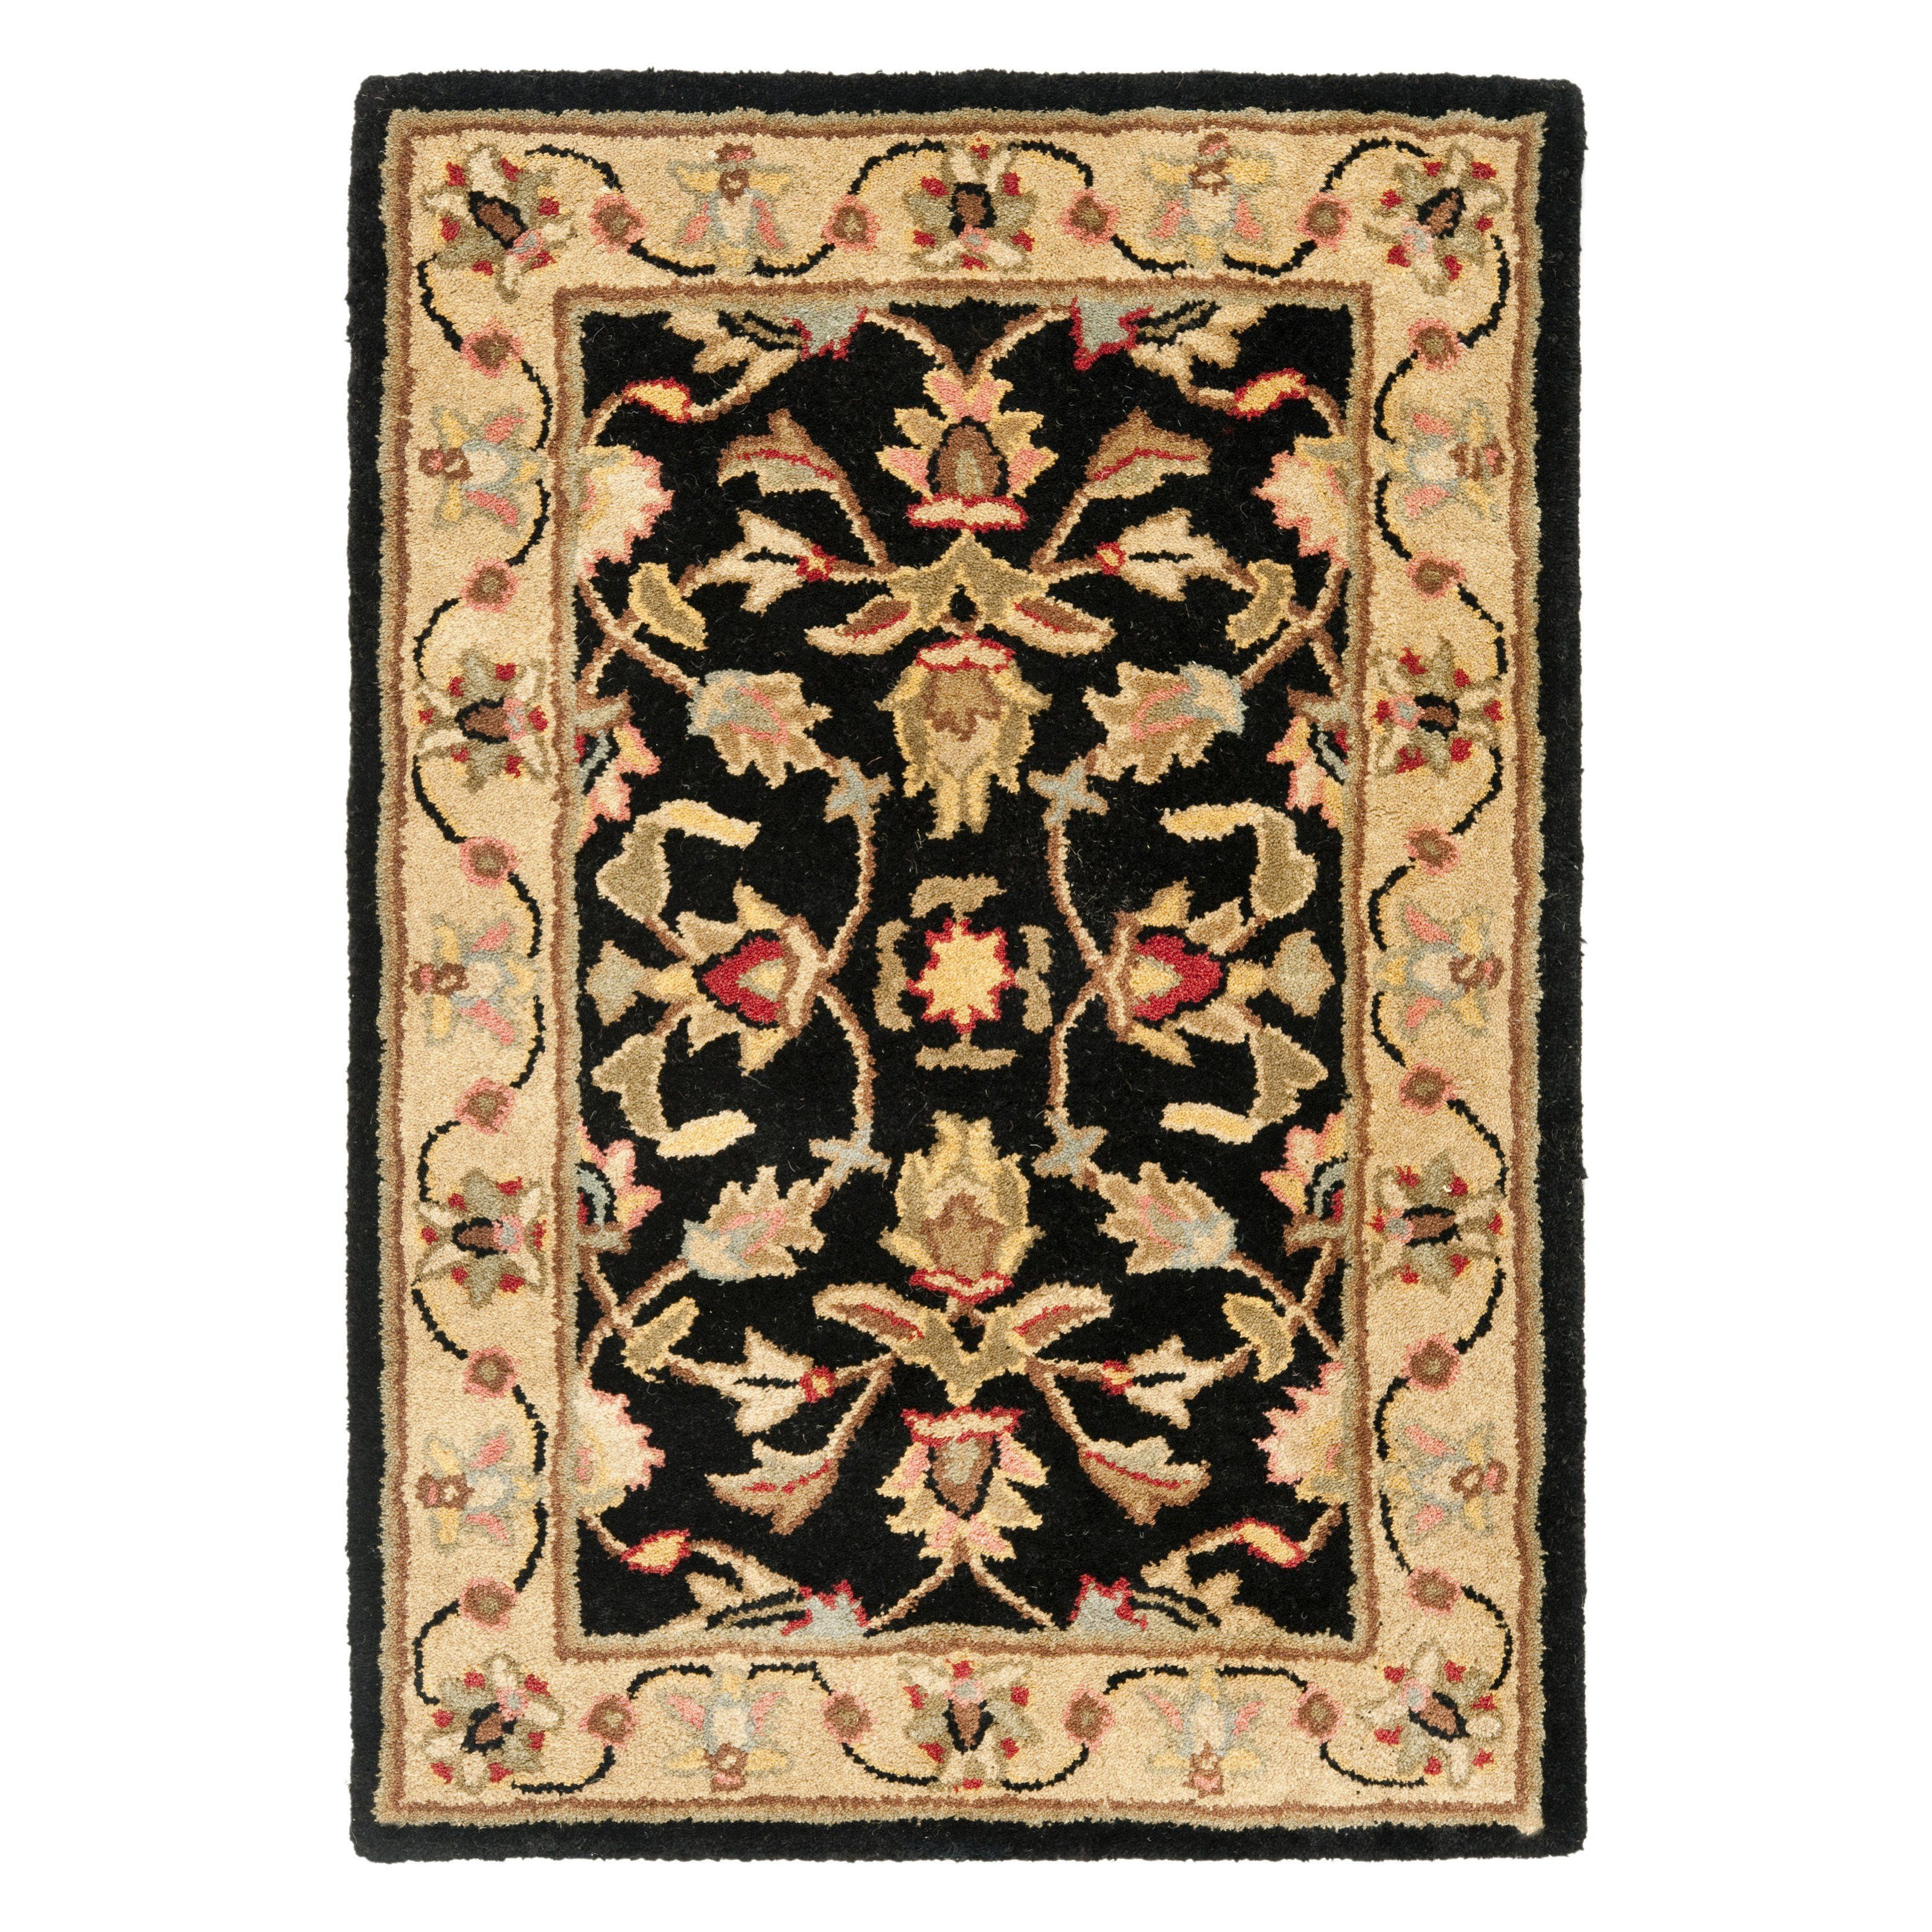 rugs round grey unusual luxury by bathroom stylist improvement photos and black area gray gold home rug